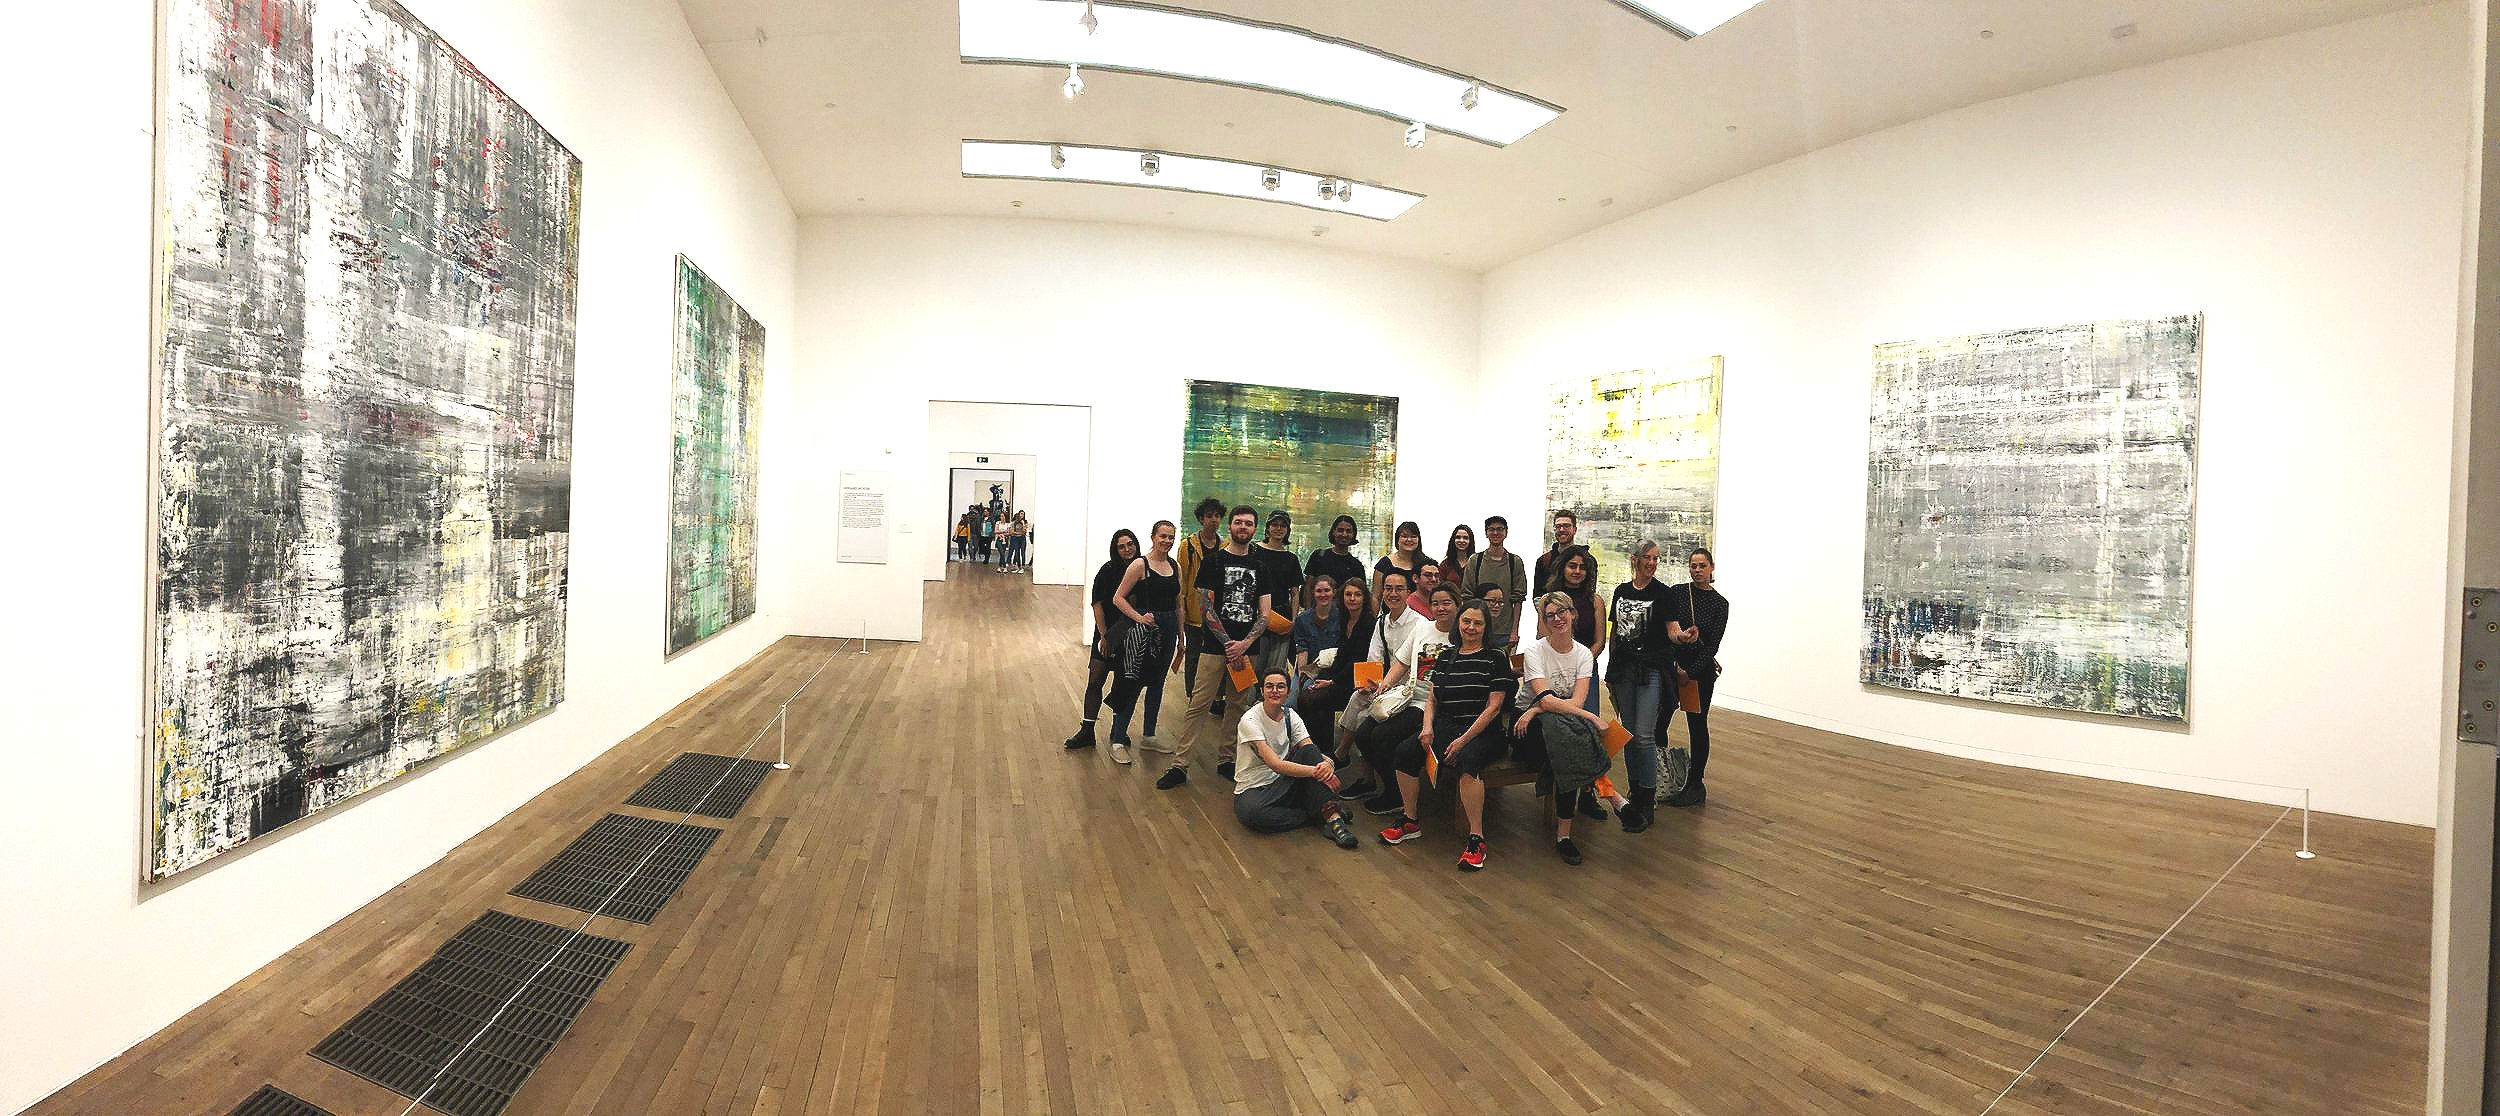 Our group posing in the Gerhard Richter room at the Tate Modern